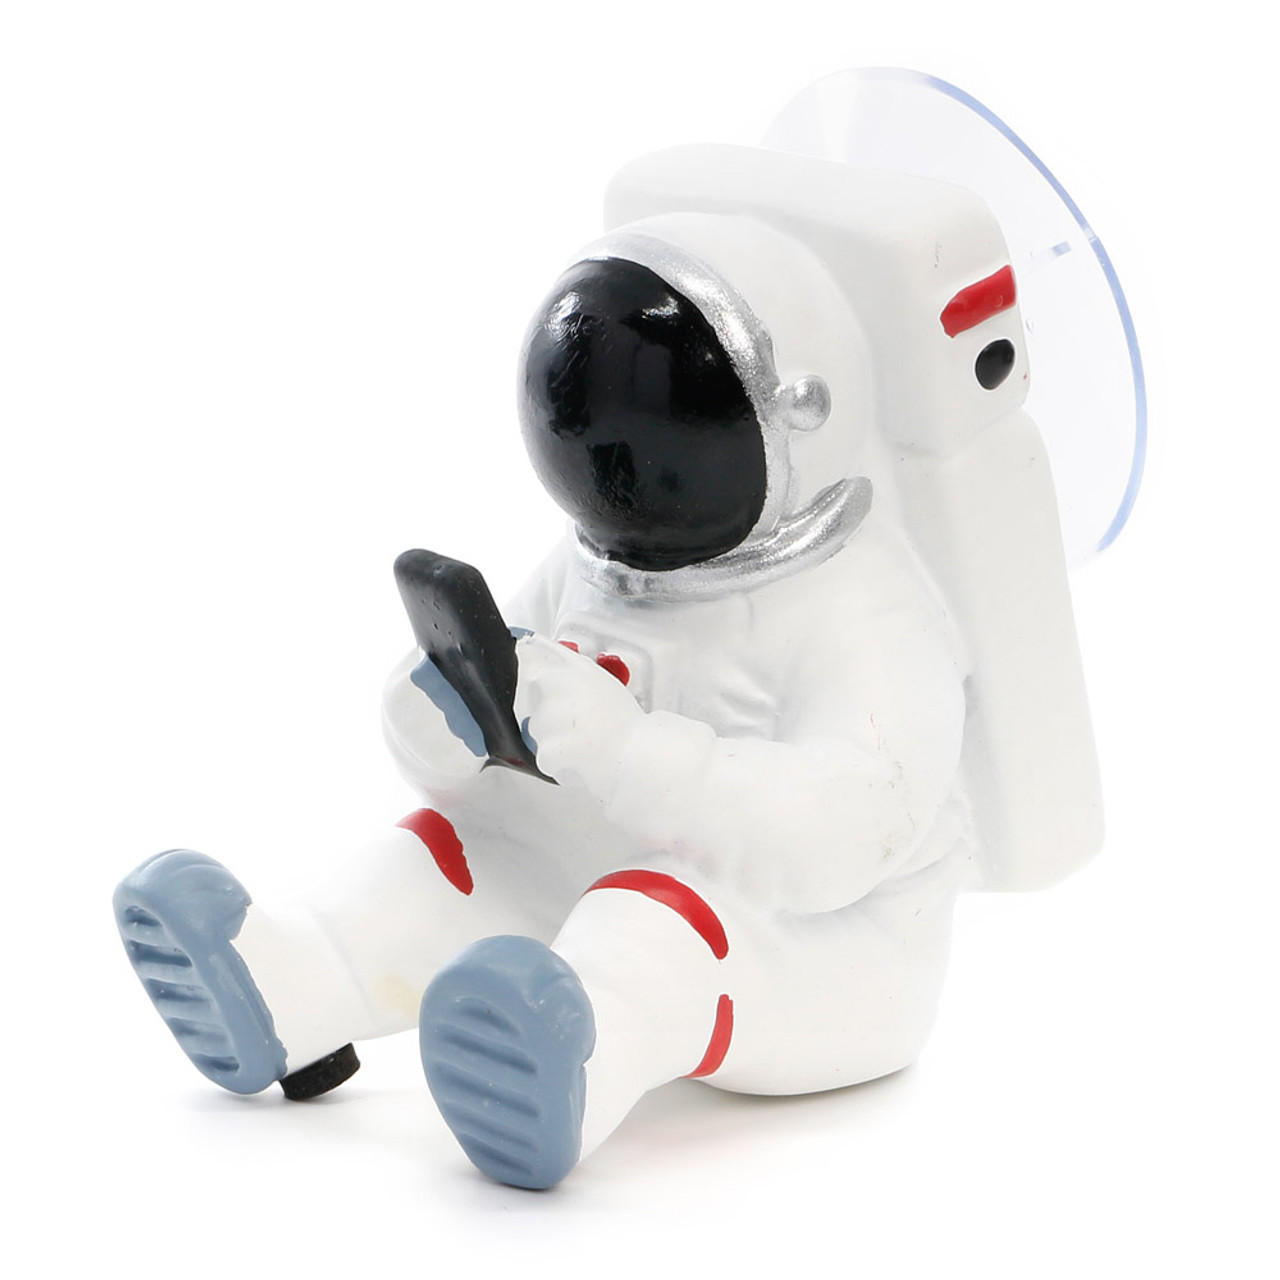 Seto Craft Motif Hand Painting Cellphone / Mobile Device Stand - Astronaut or Spaceman ( 45 Degree Angle )